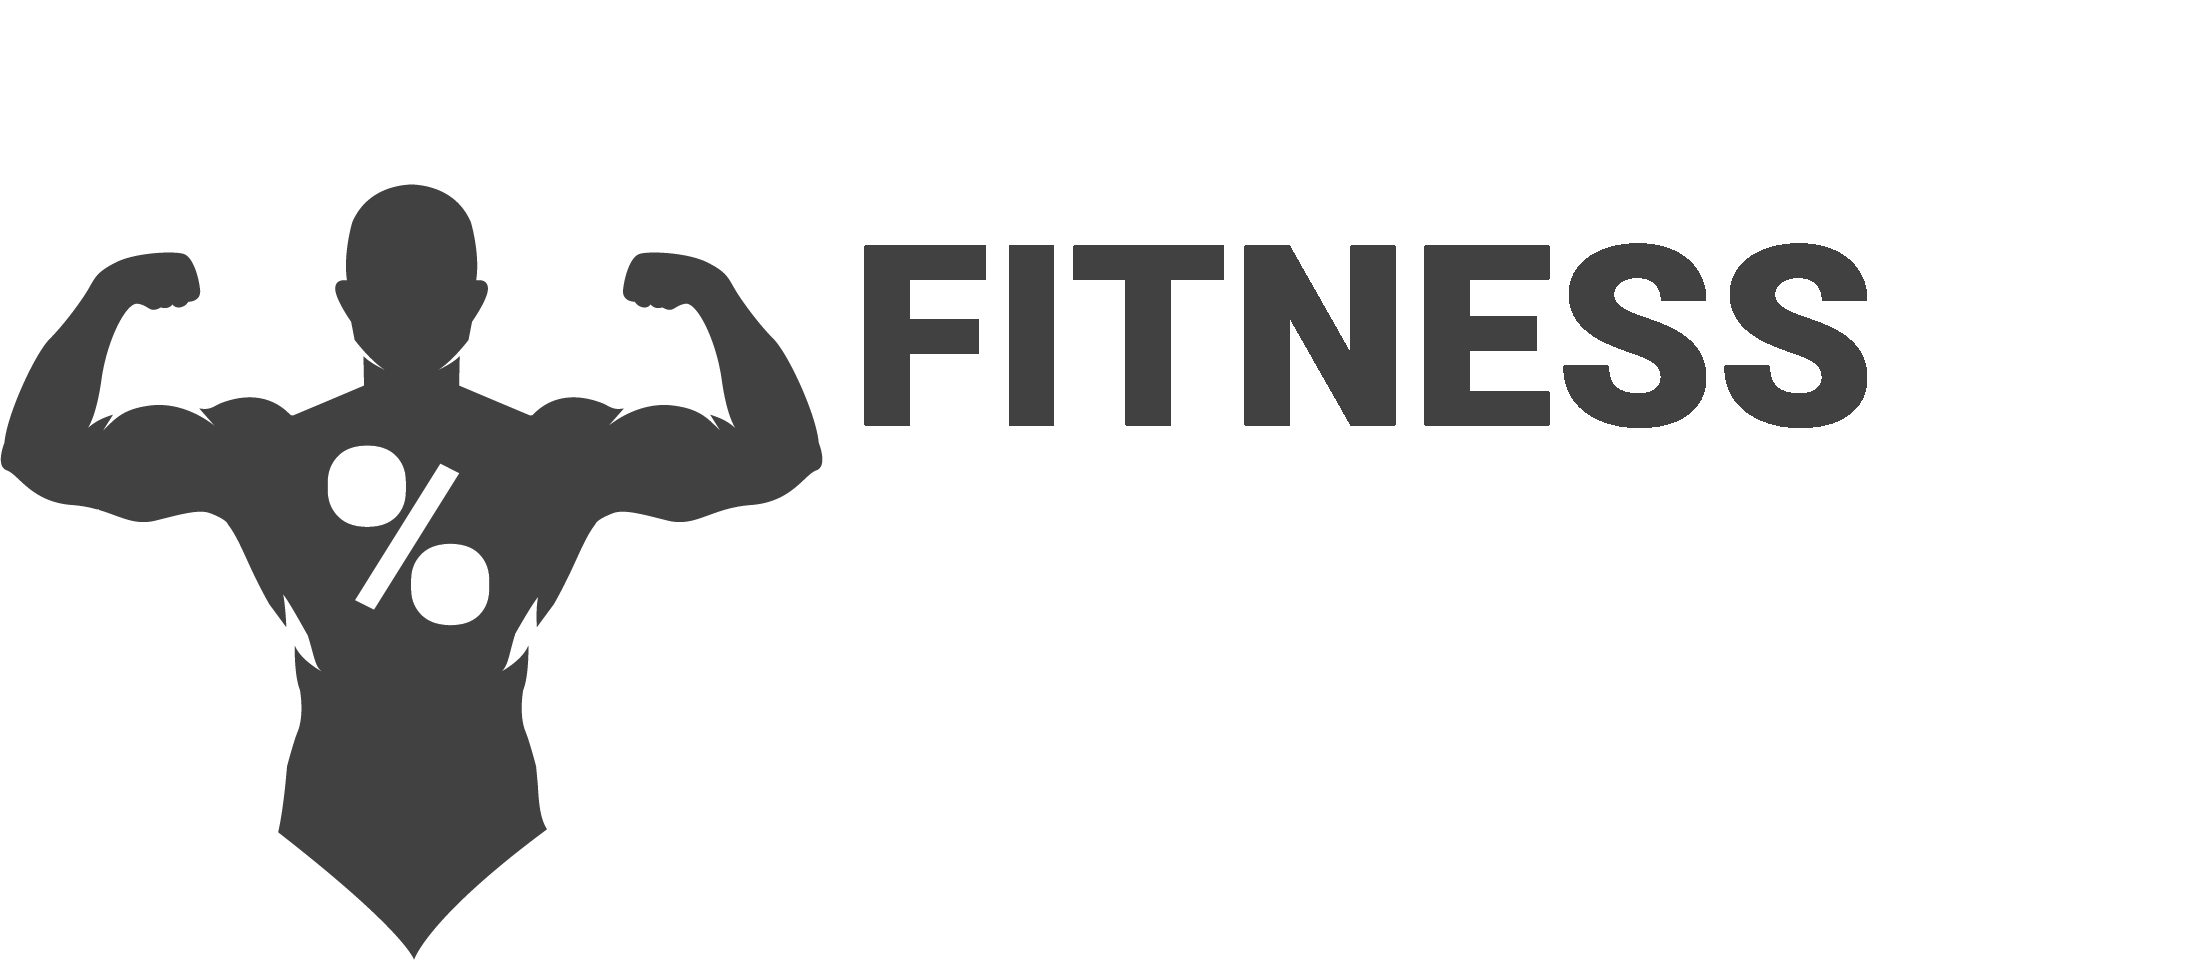 Fitness-Discount